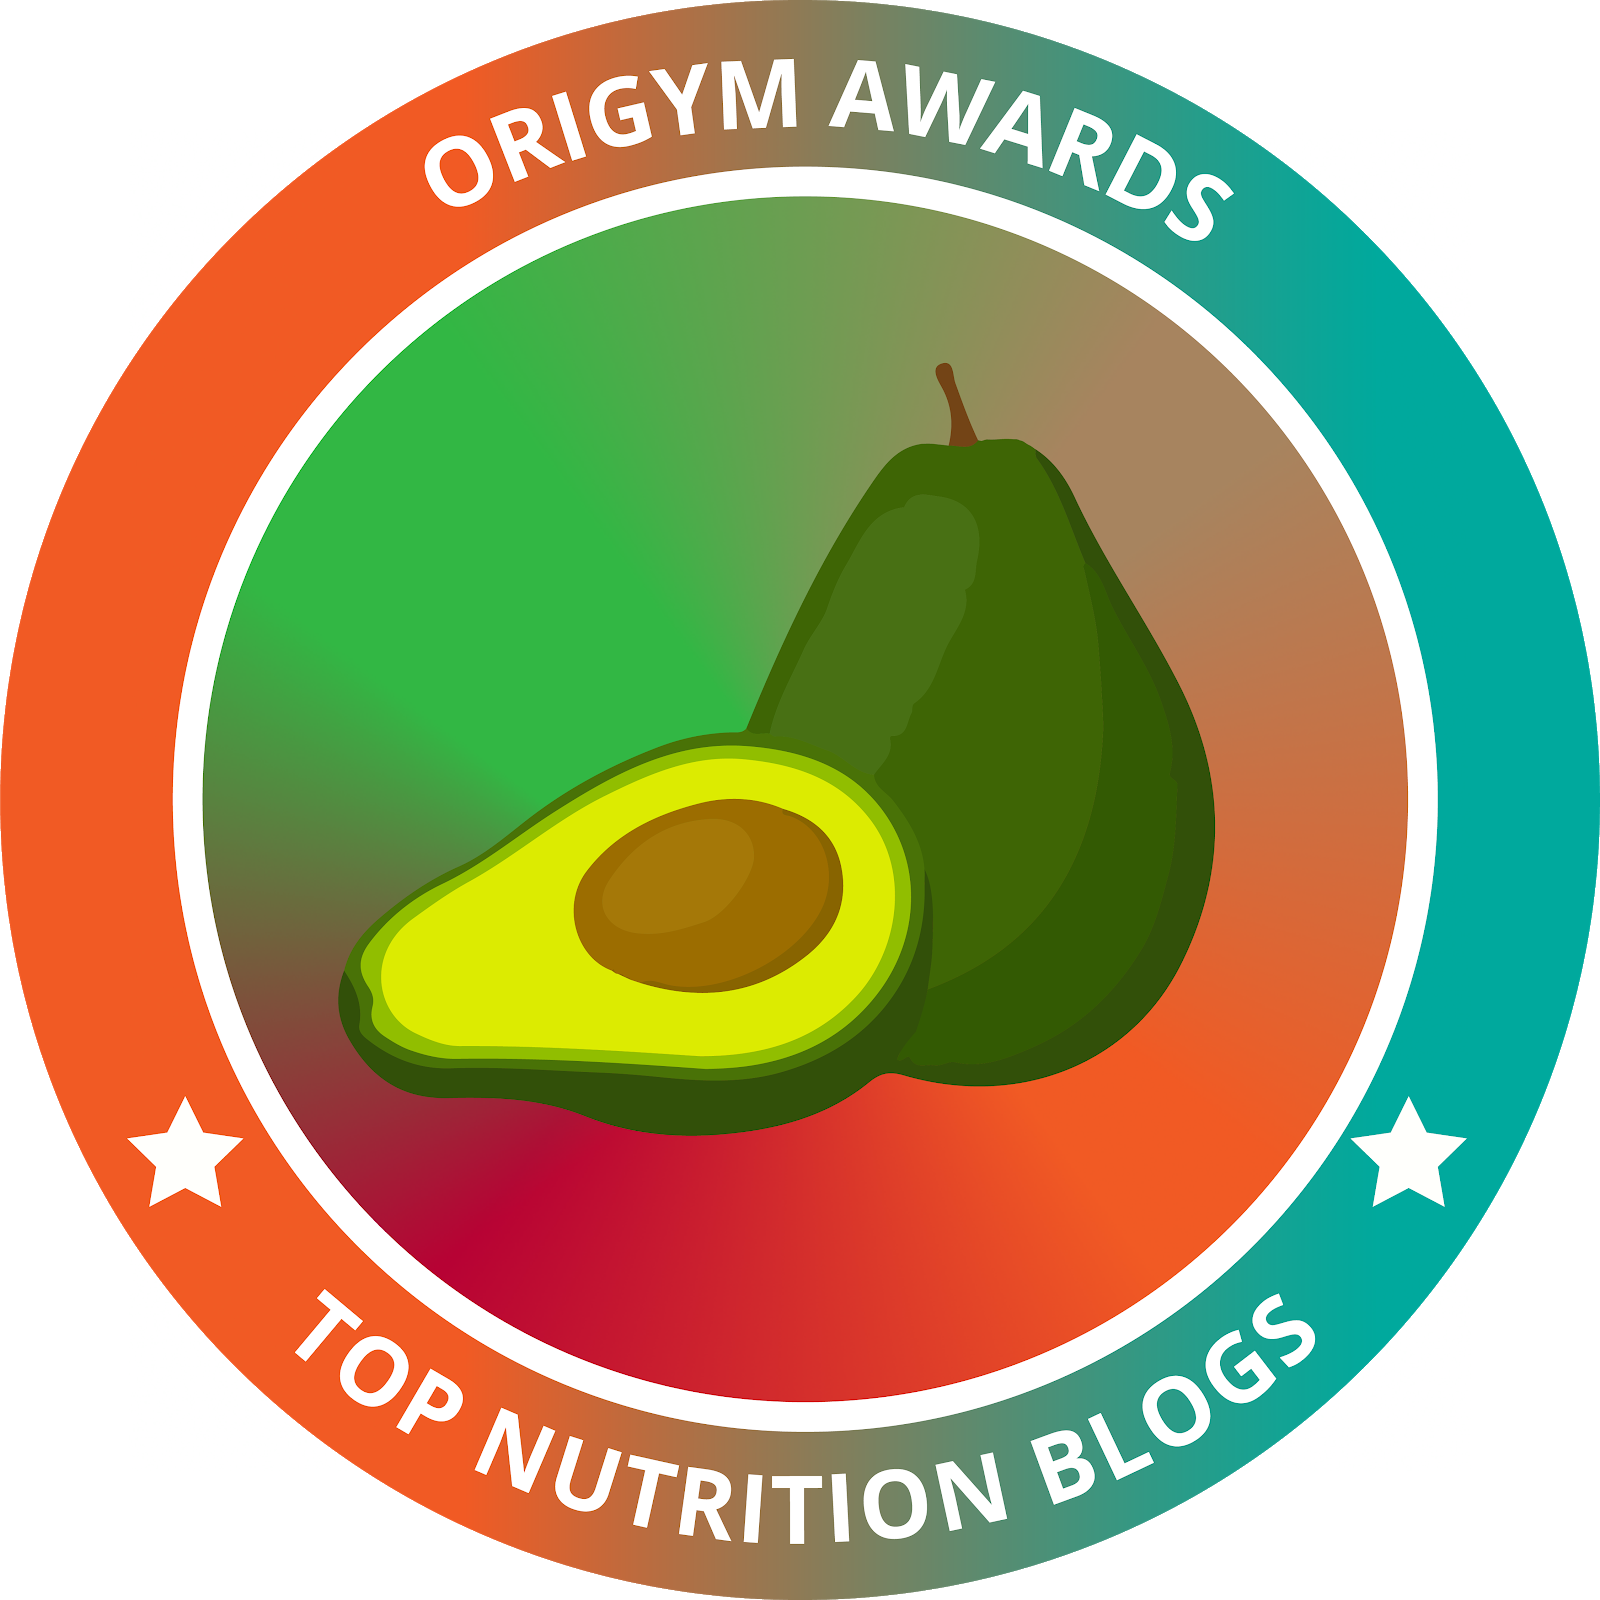 Top Nutrition Blogs 2019